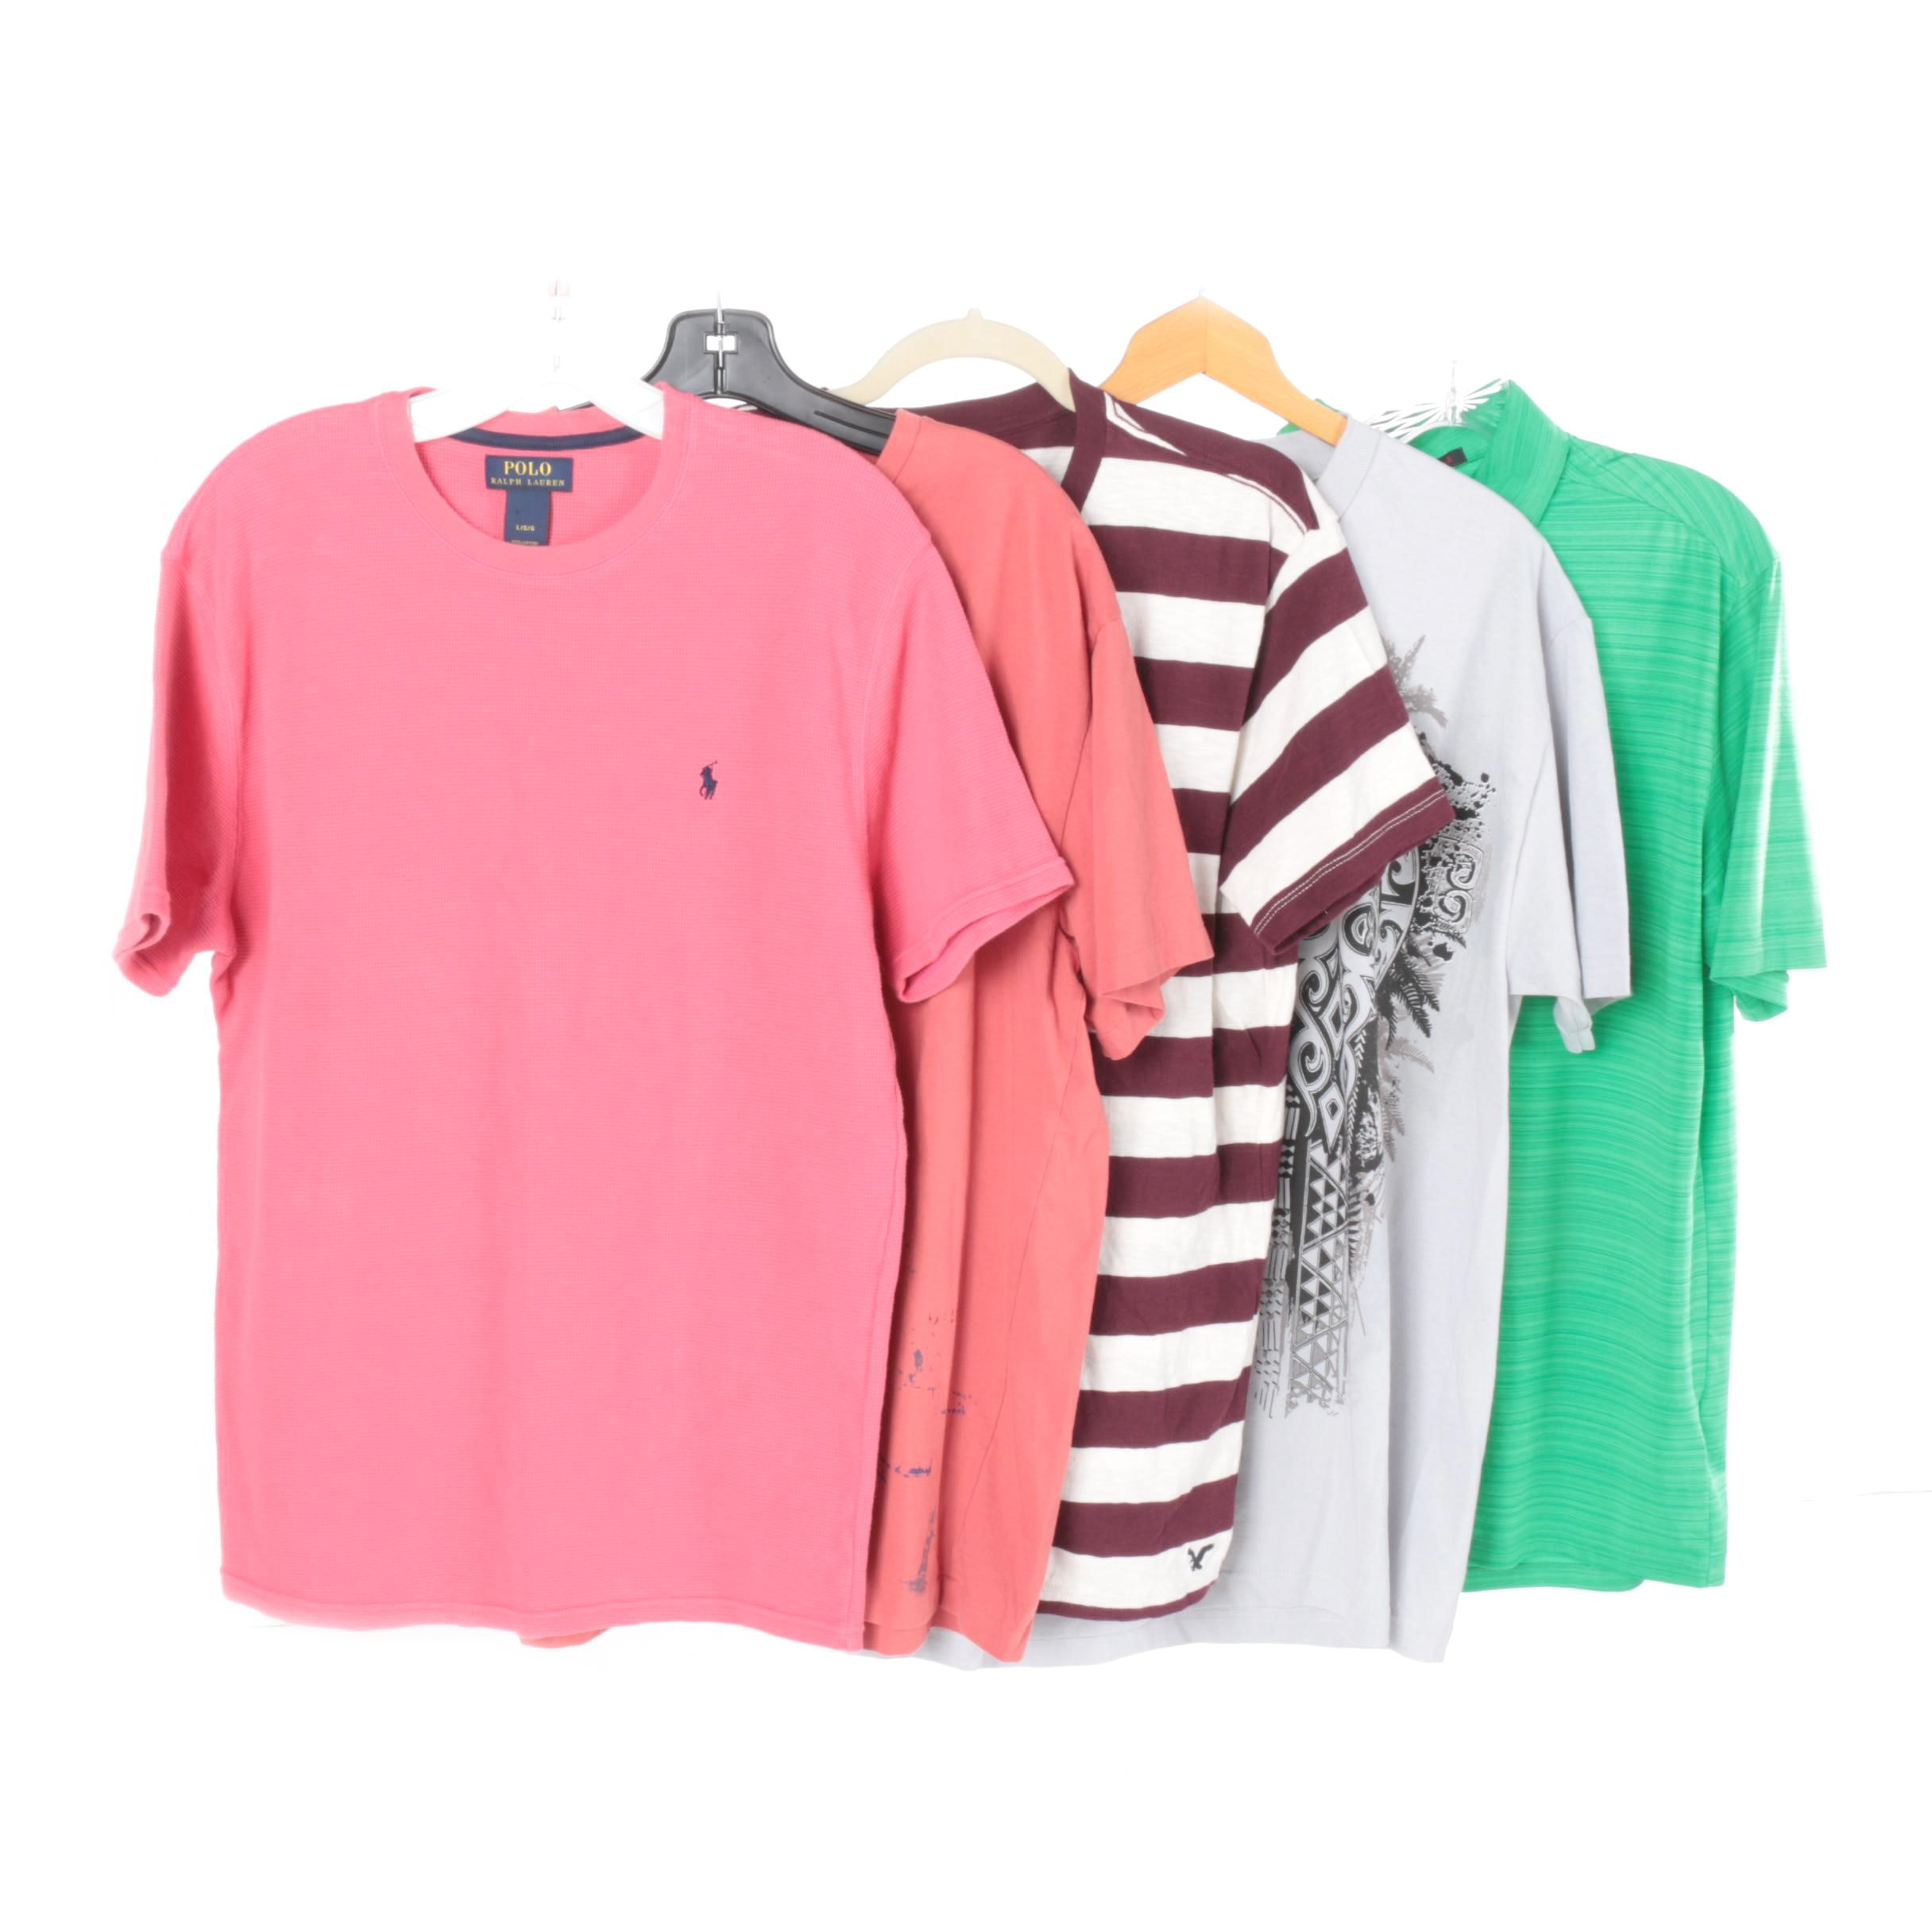 Men's Short-Sleeve T-Shirts and a Polo Including Nike and Polo by Ralph Lauren